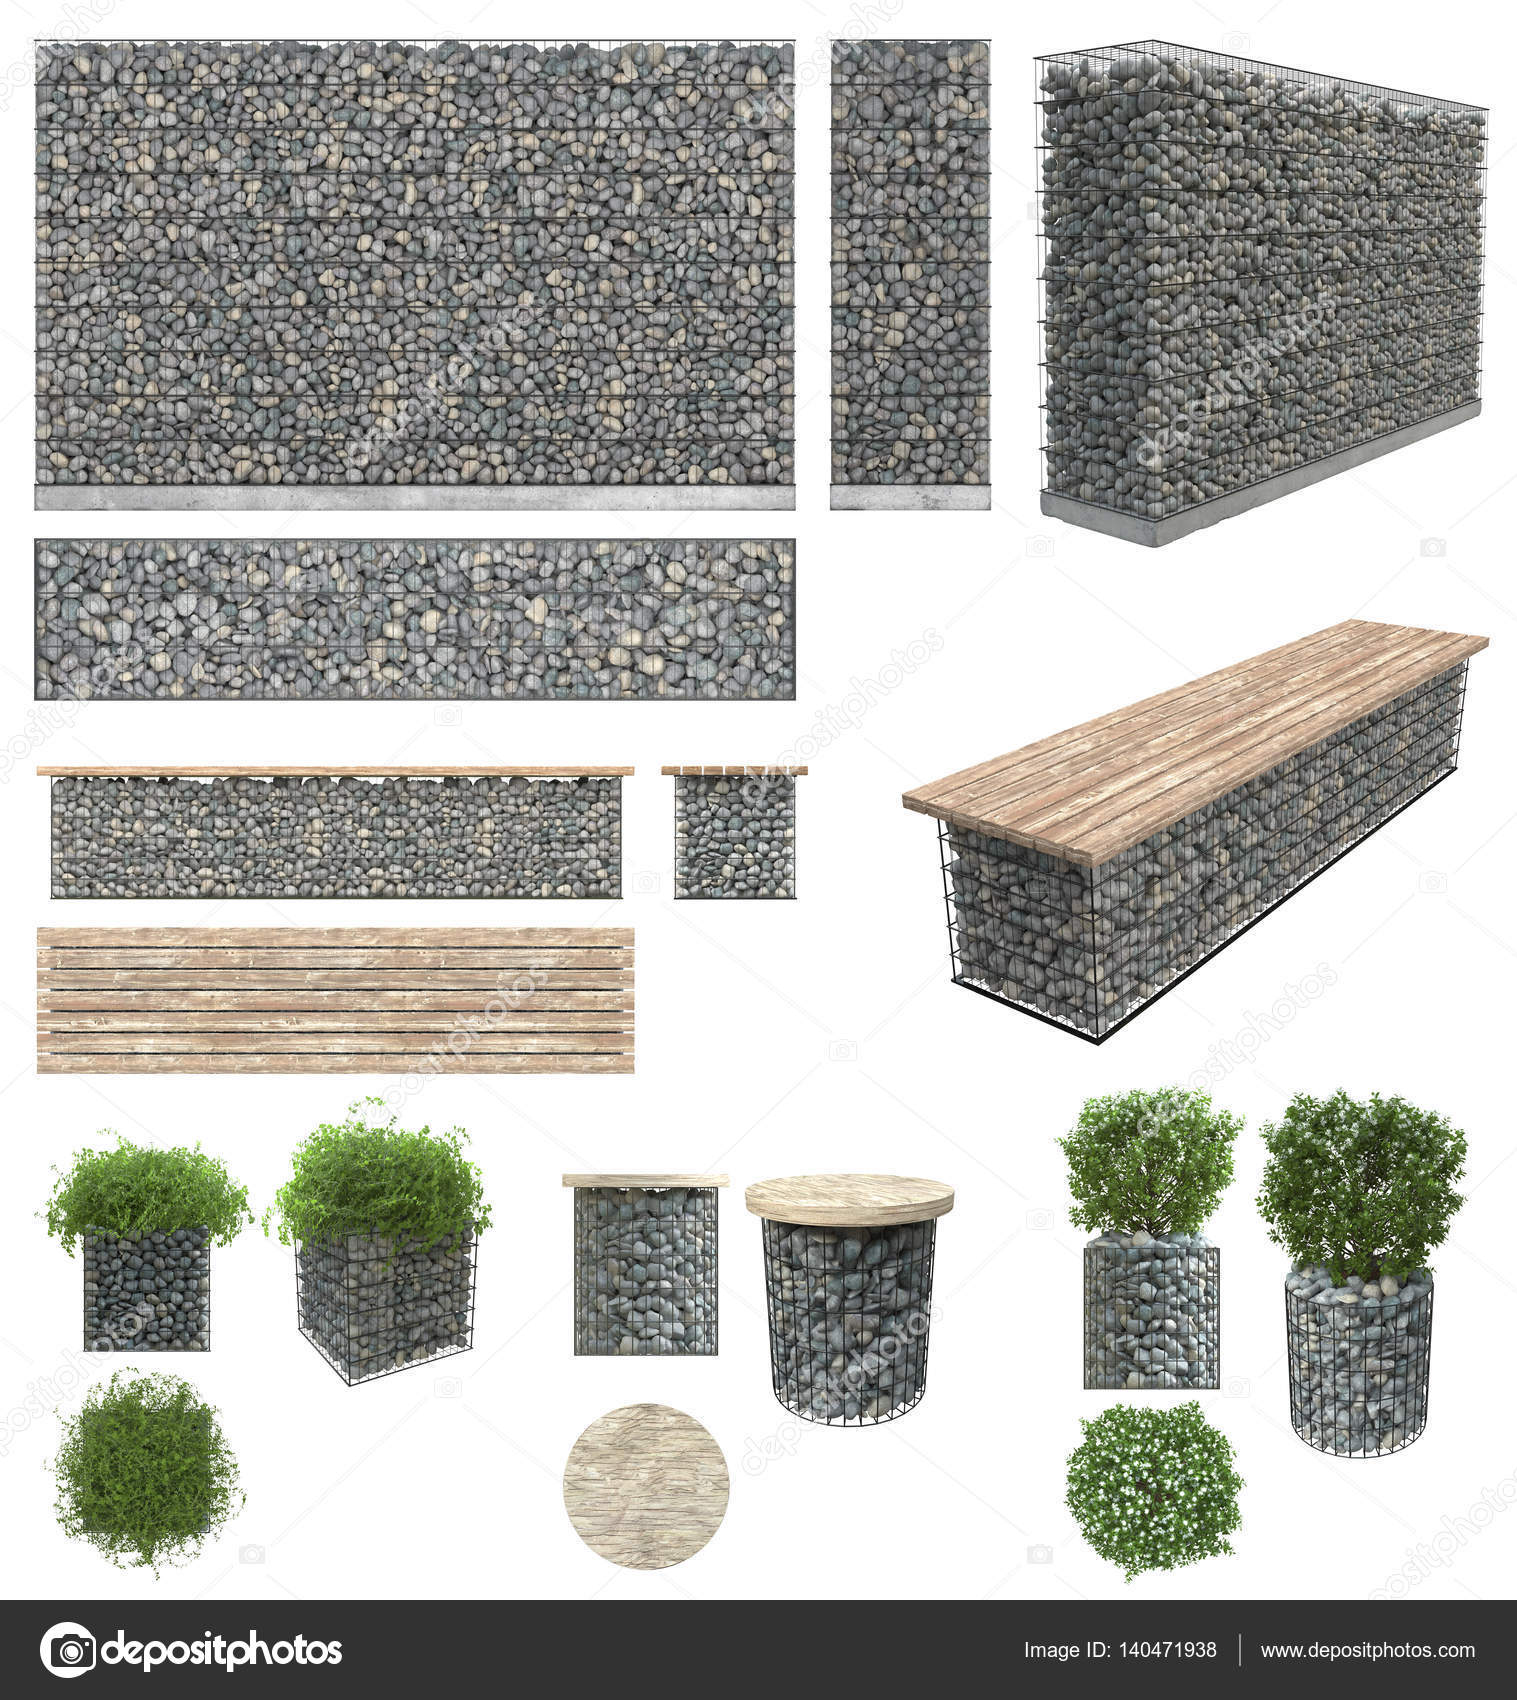 Gabion pierres en treillis m tallique mur banc pots for Table vue de haut